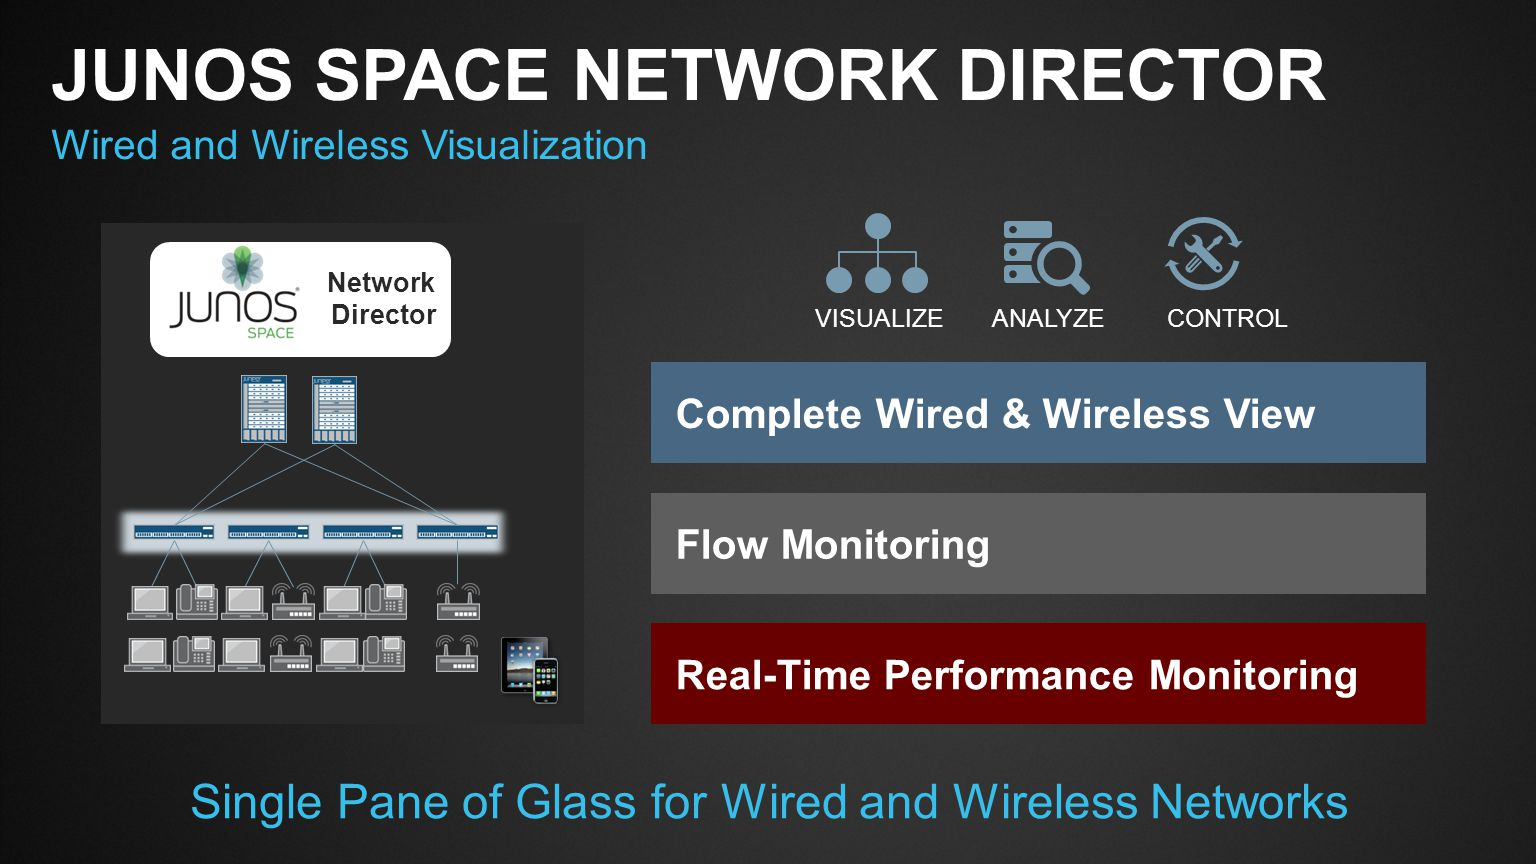 Single Pane of Glass for Wired and Wireless Networks